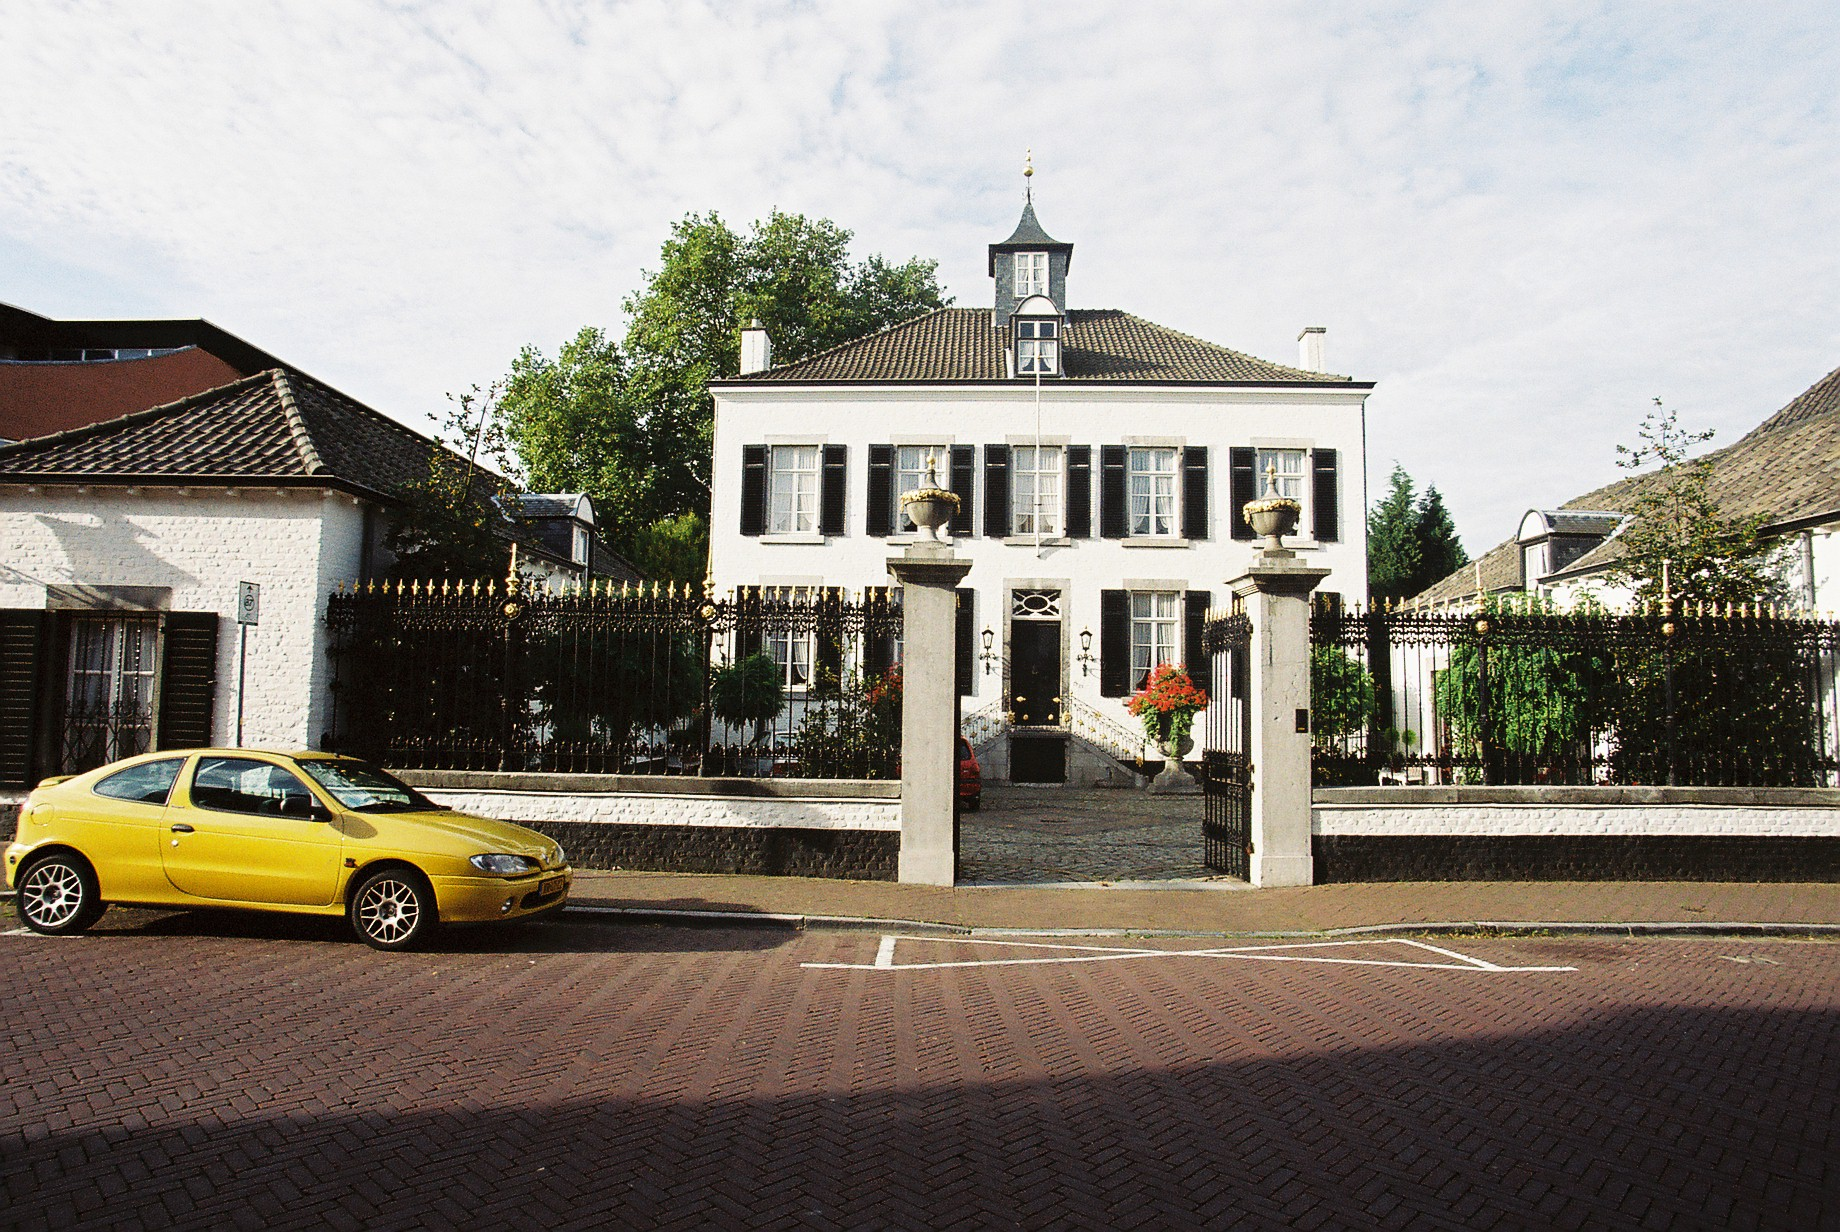 Huis bocholz in roermond monument for Huis tuin roermond